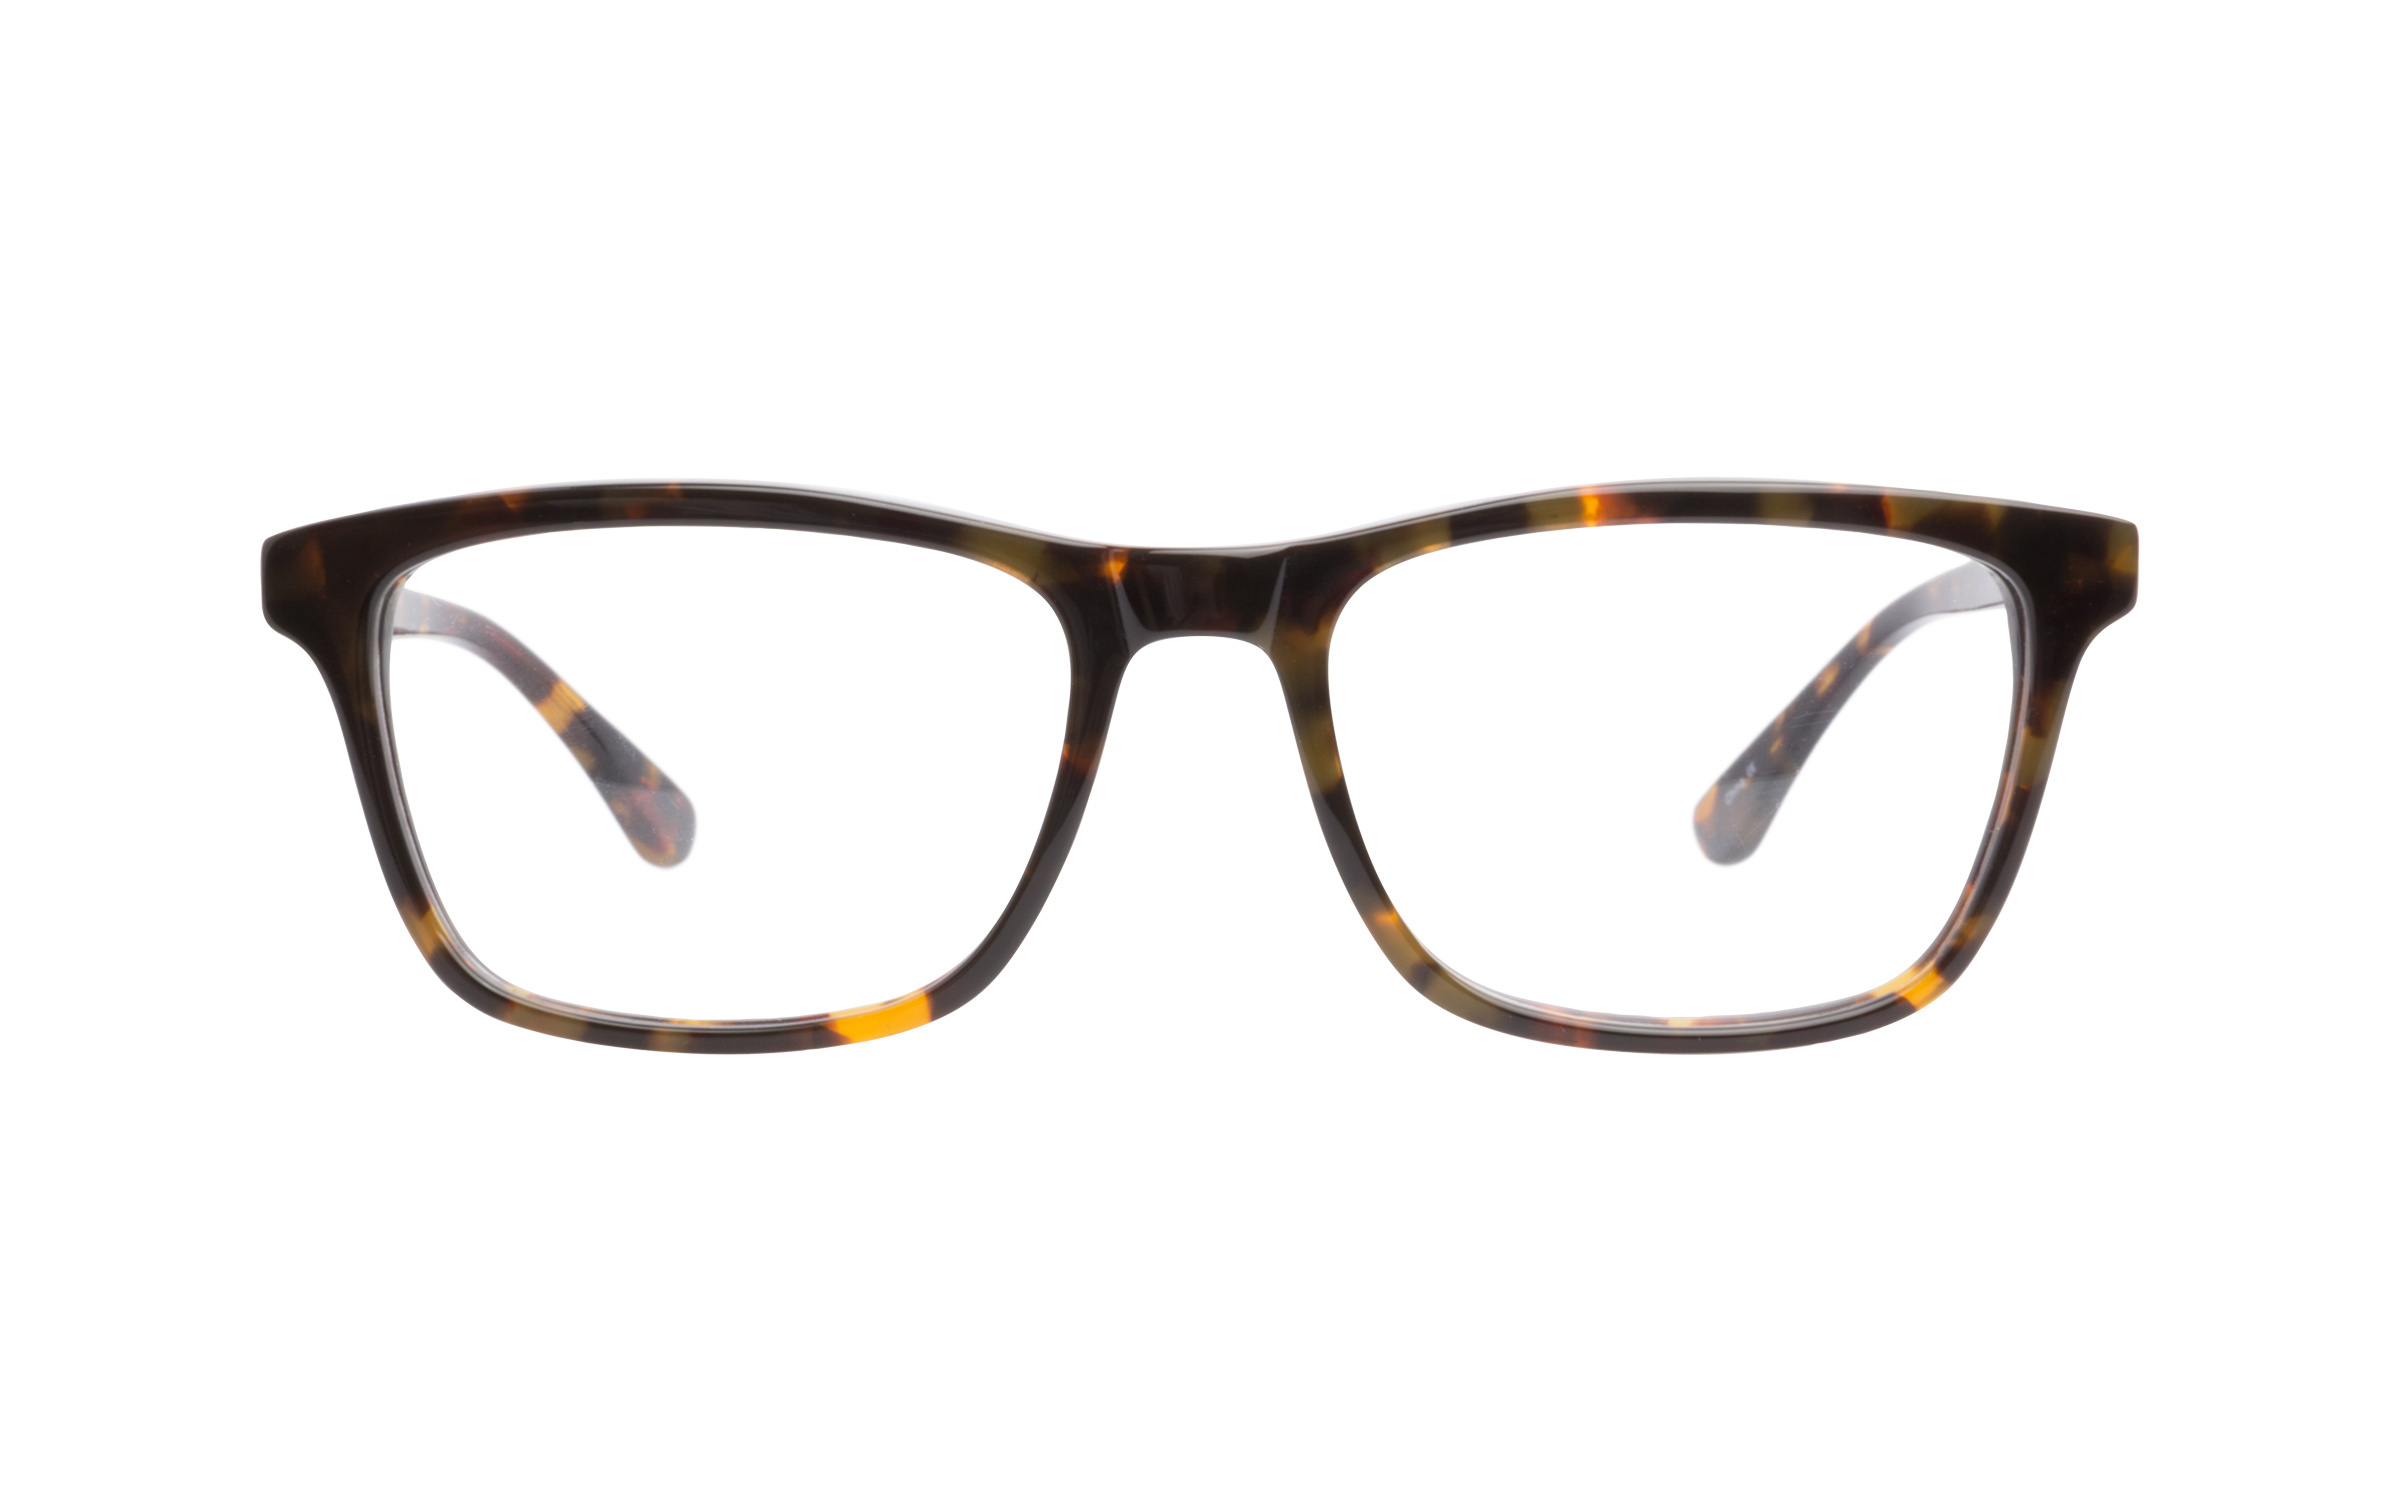 Retro_Glasses_Tortoise_Joseph_Marc_Online_Coastal